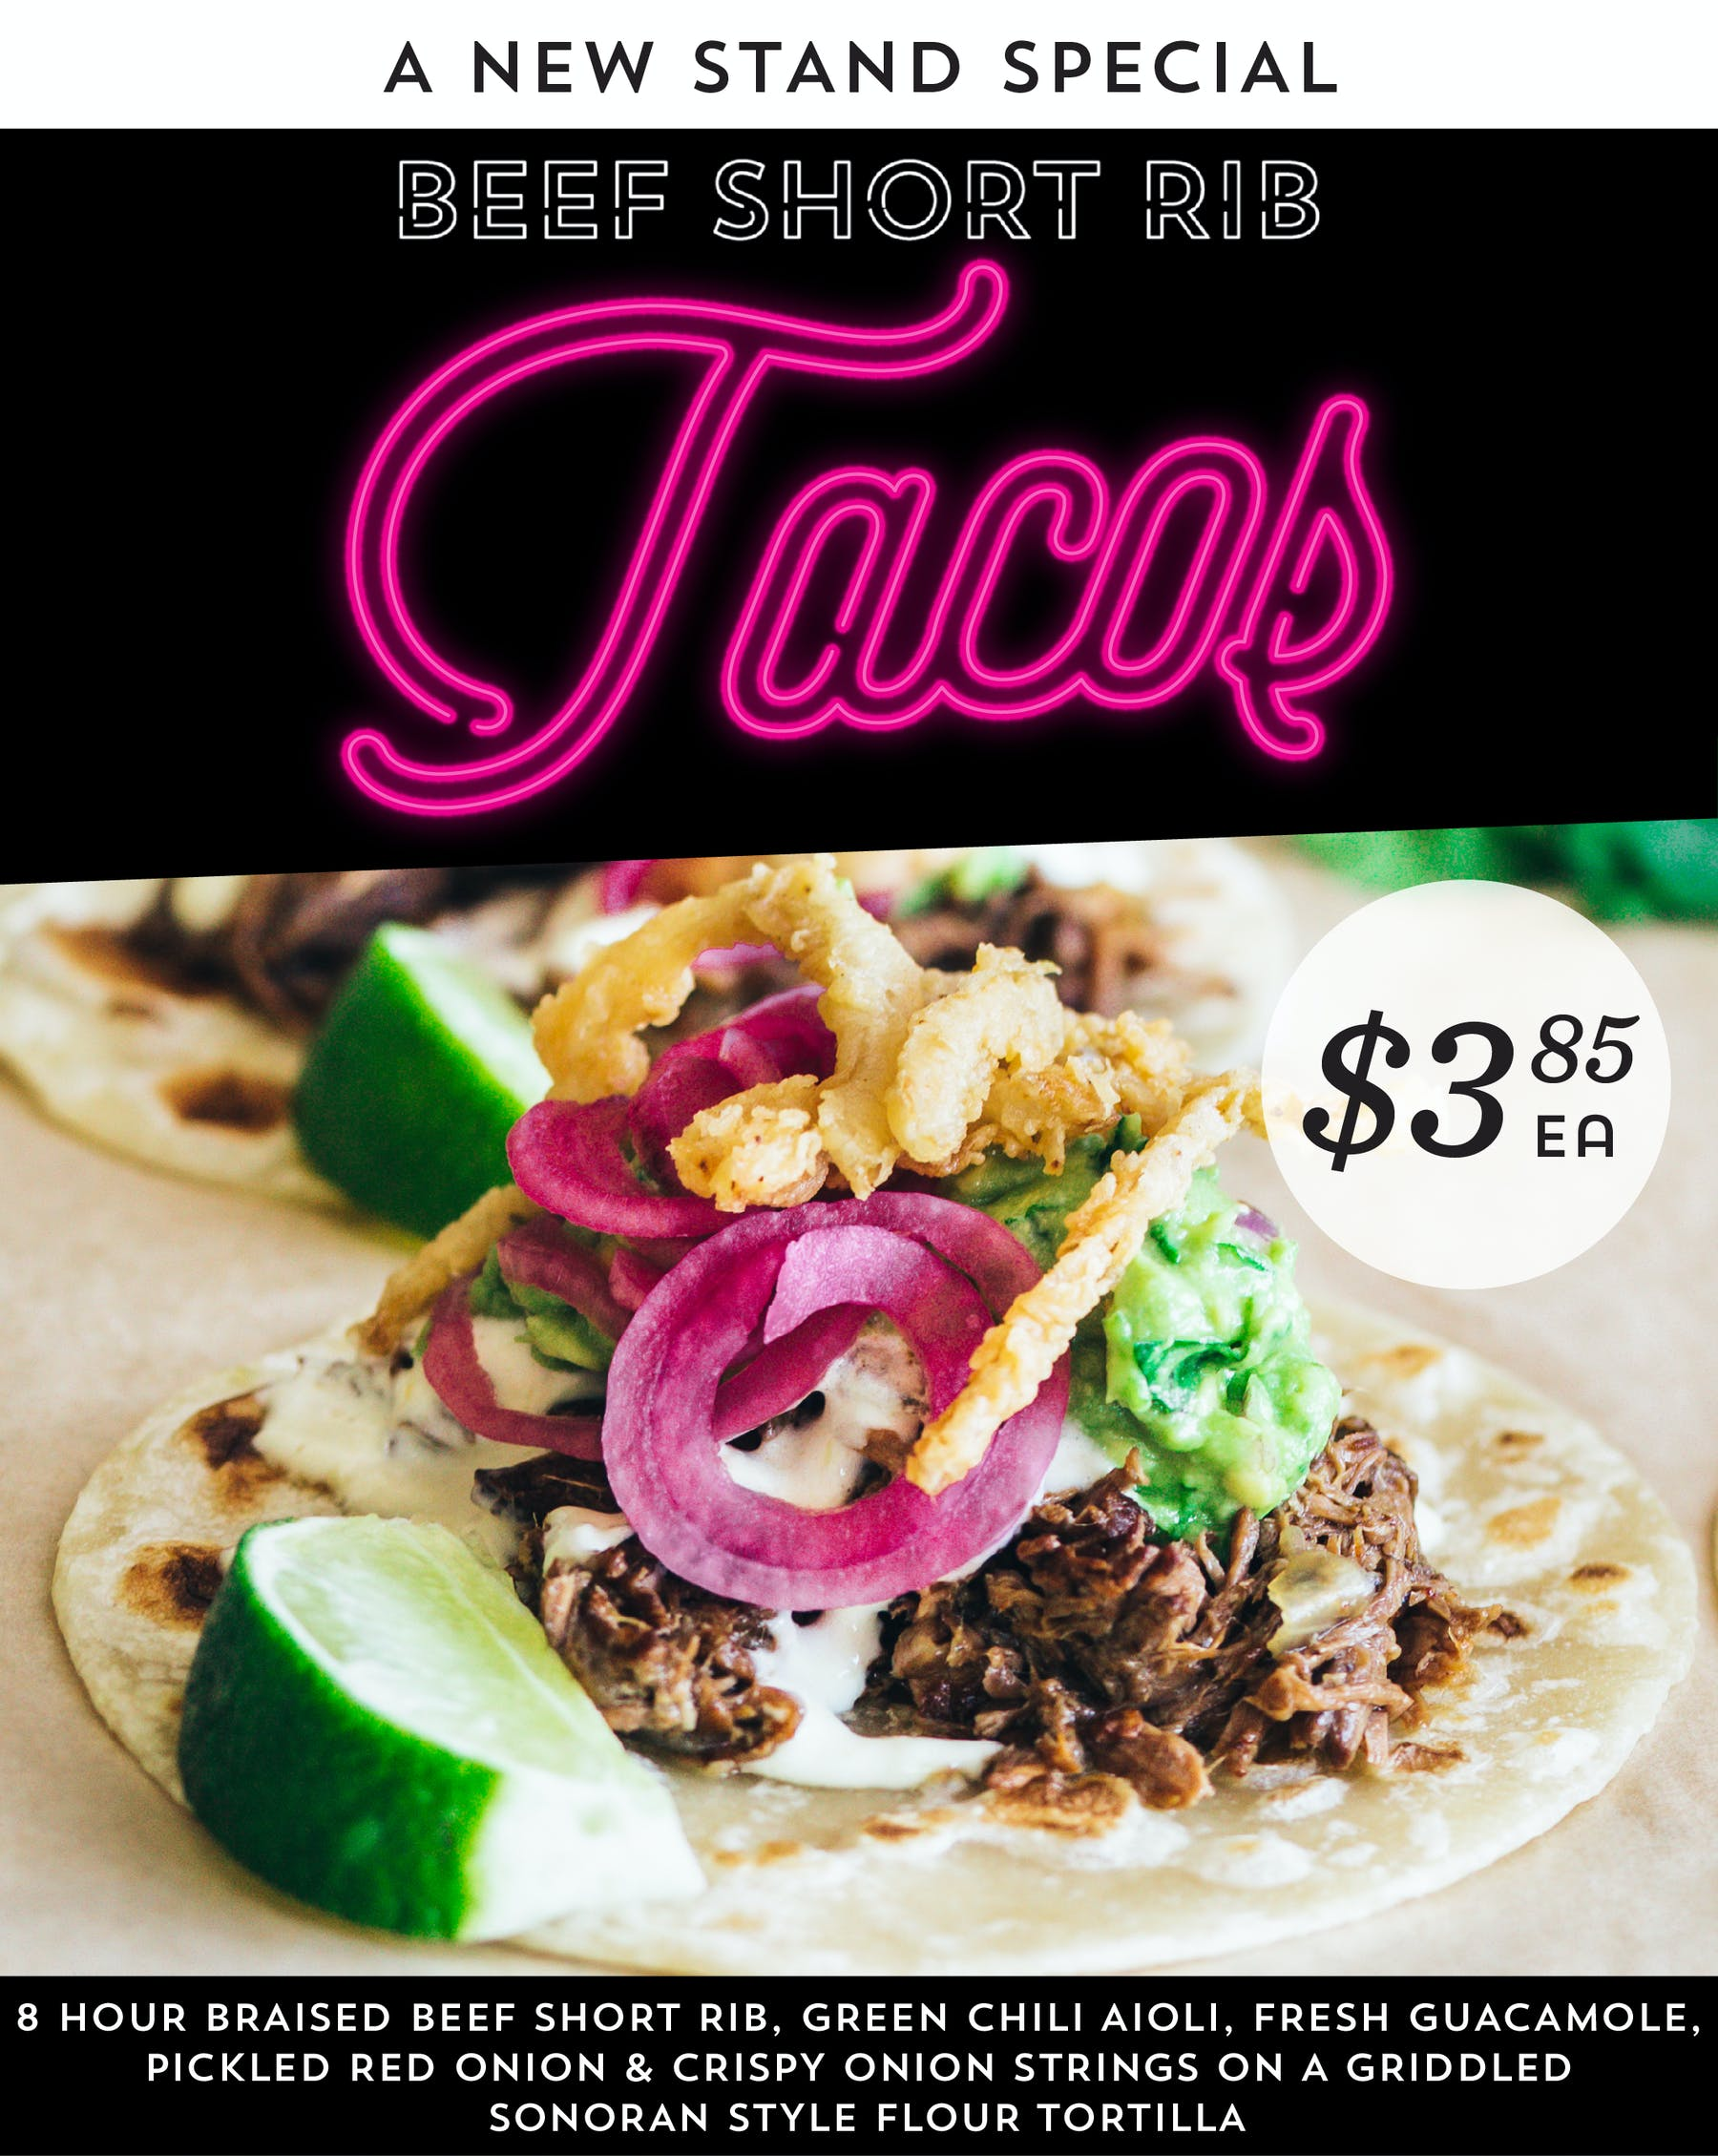 Beef Short Rib Tacos are now available at all locations. Order now.